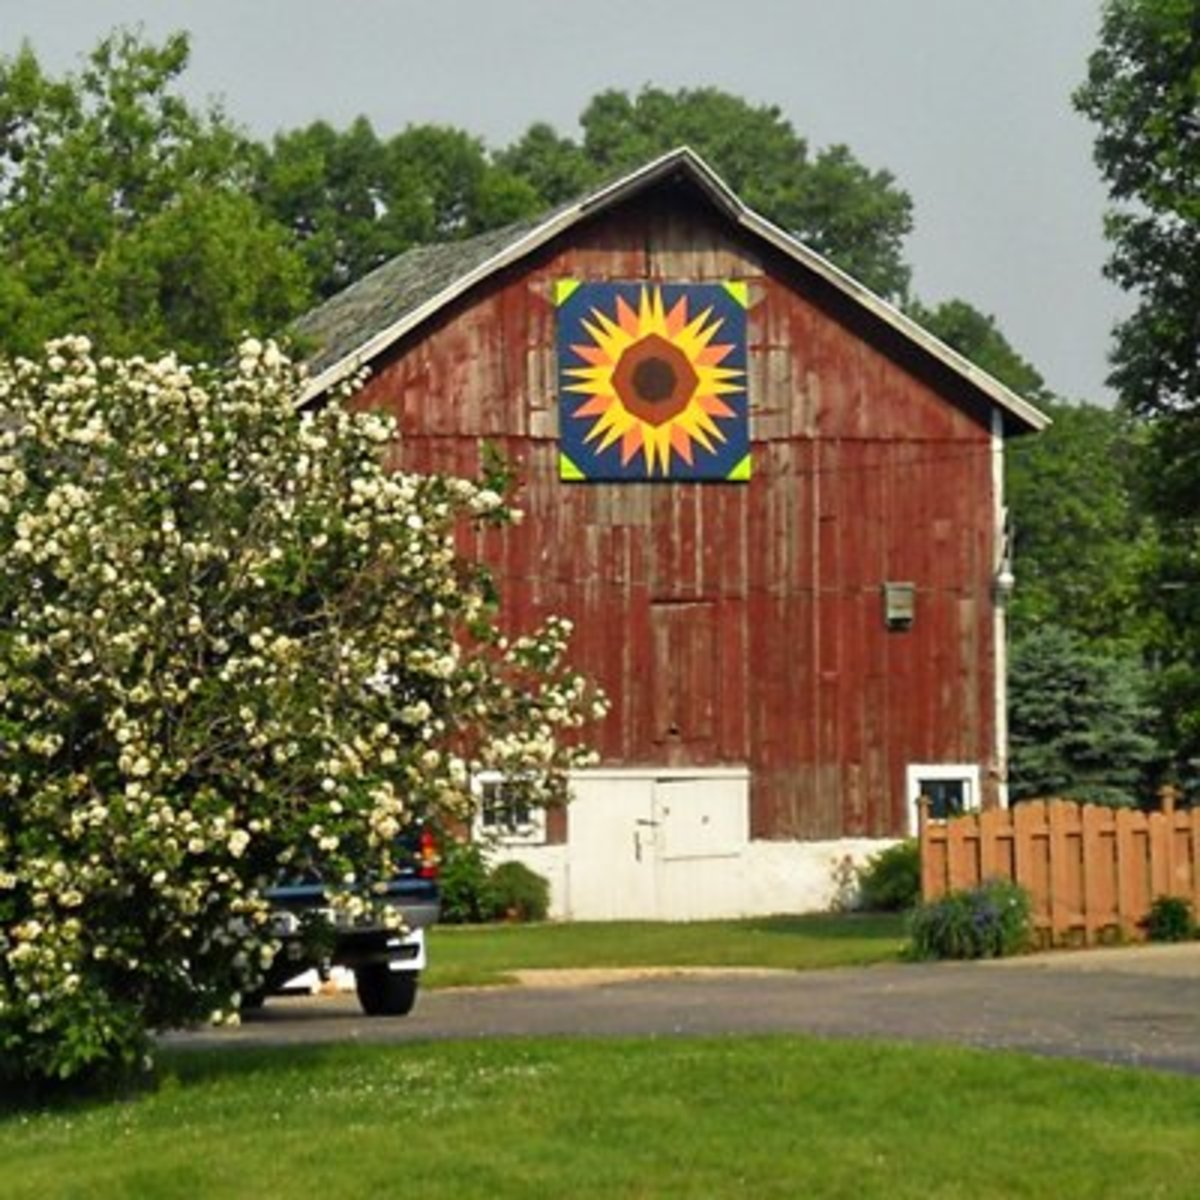 Located on the farm of Doug and Laura Zettle